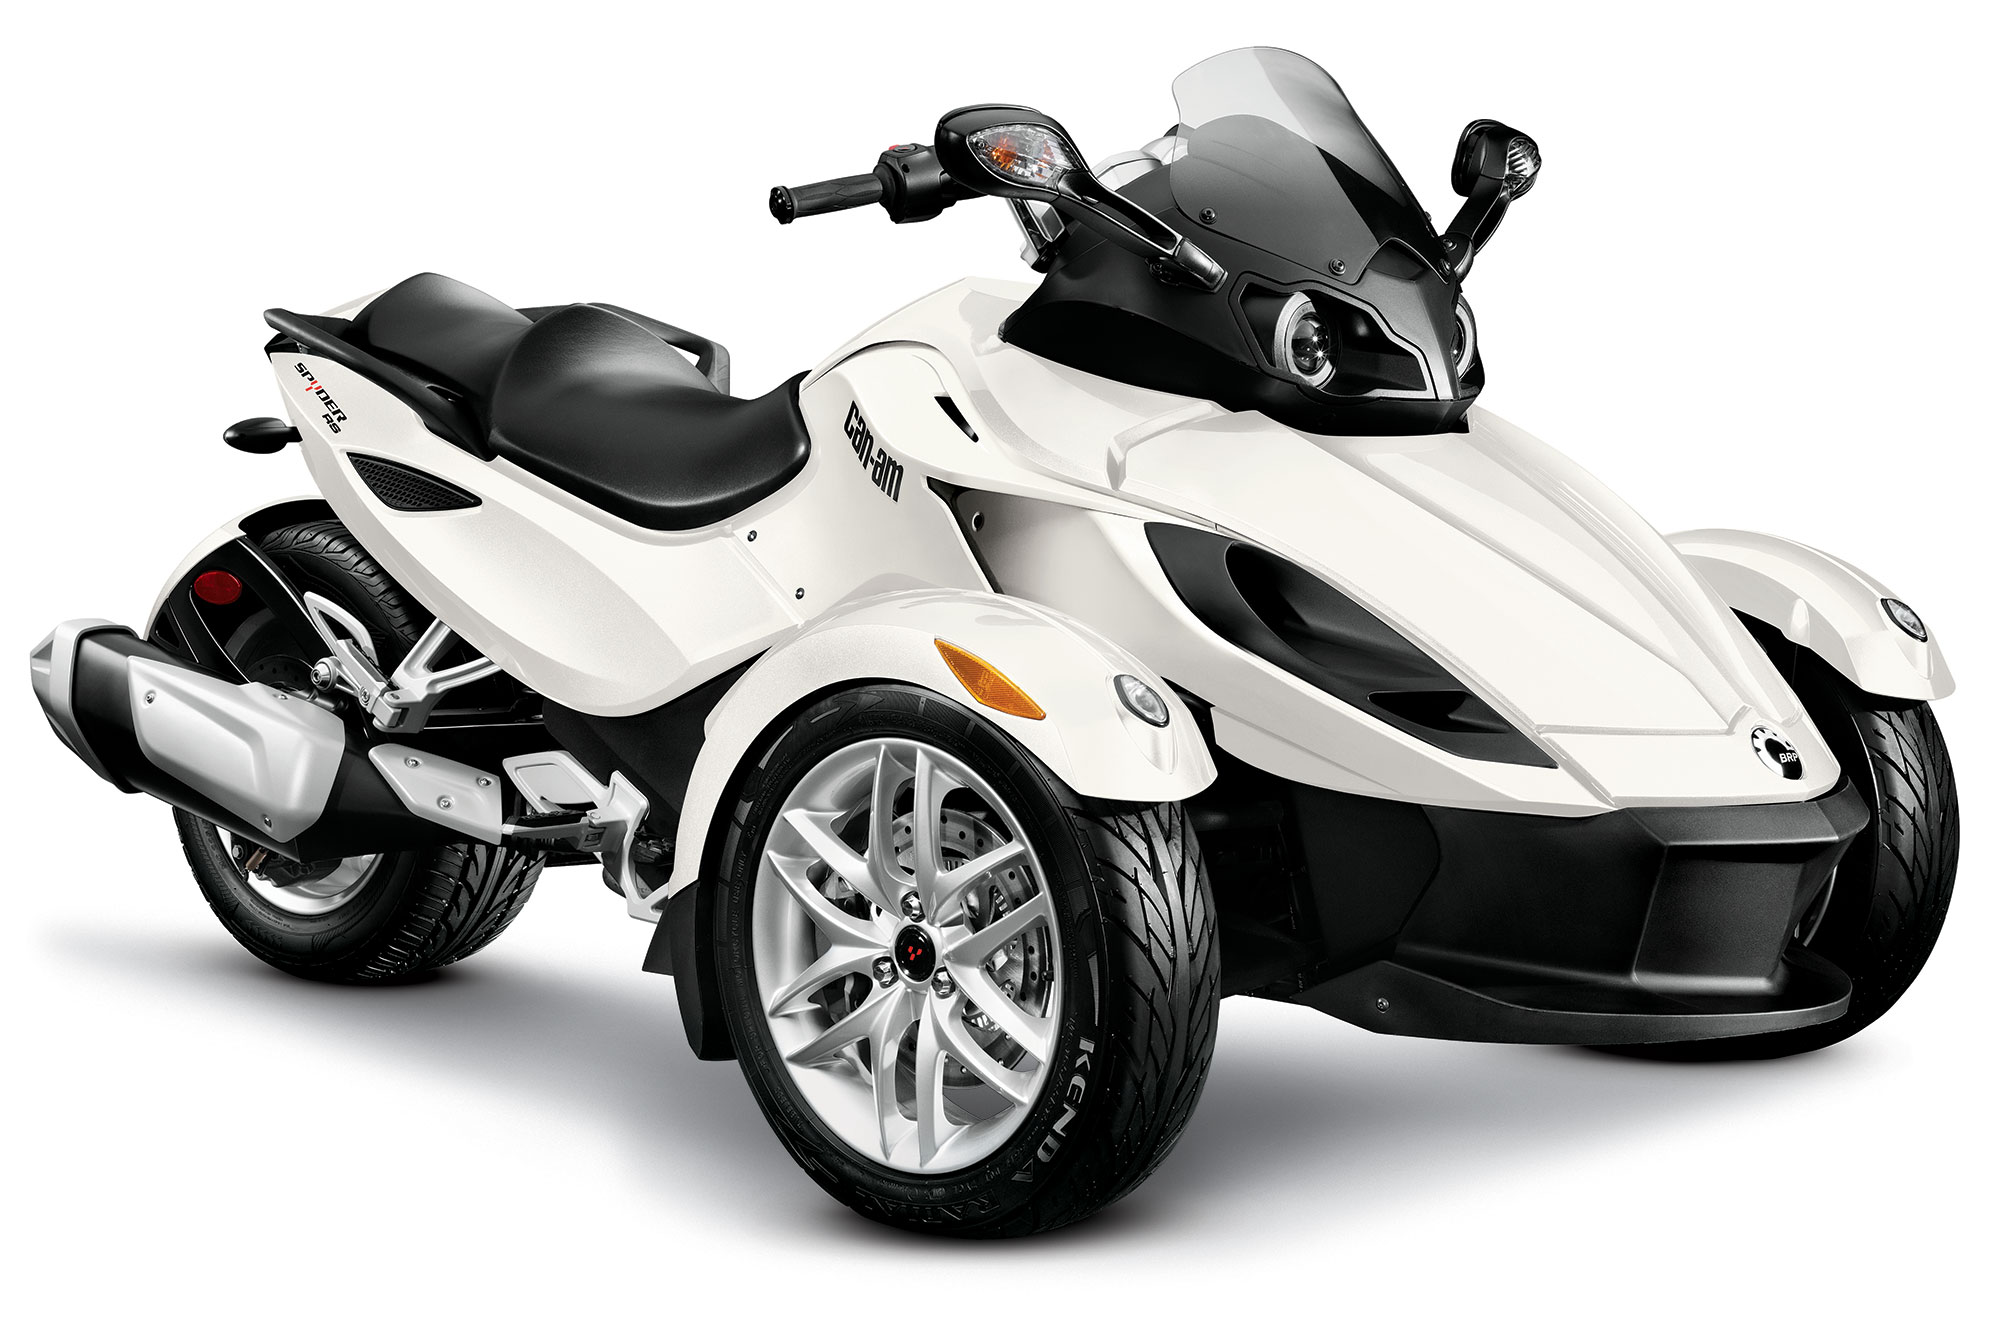 2014 Can Am Spyder Rs Review